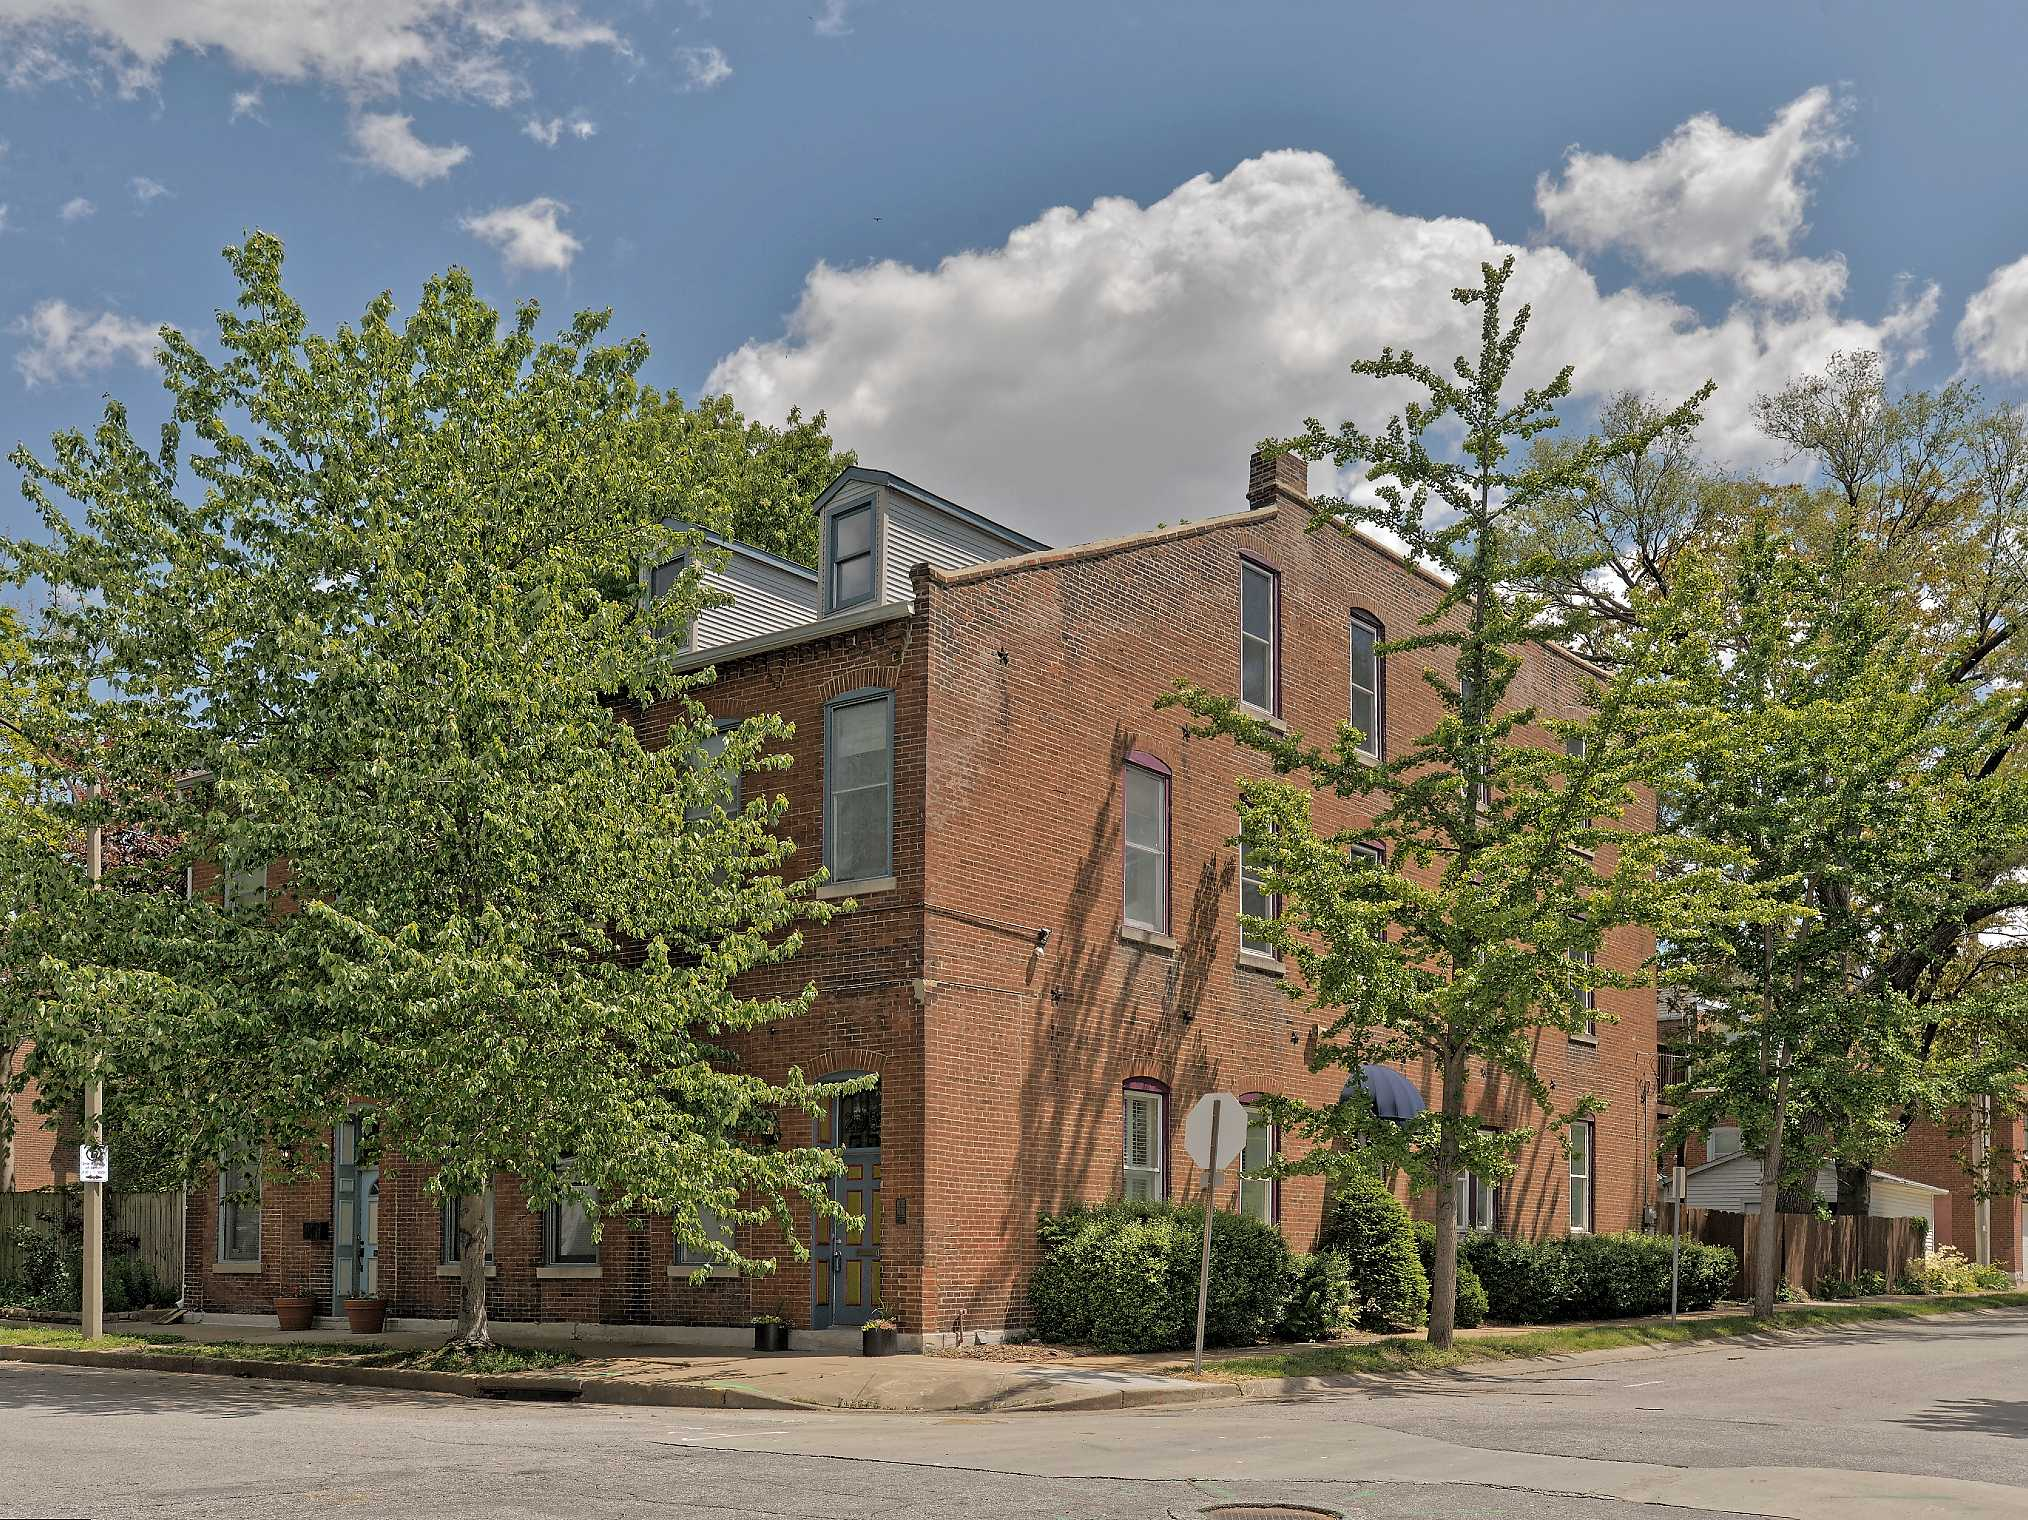 2930 Wisconsin Ave, St Louis 63118-1616